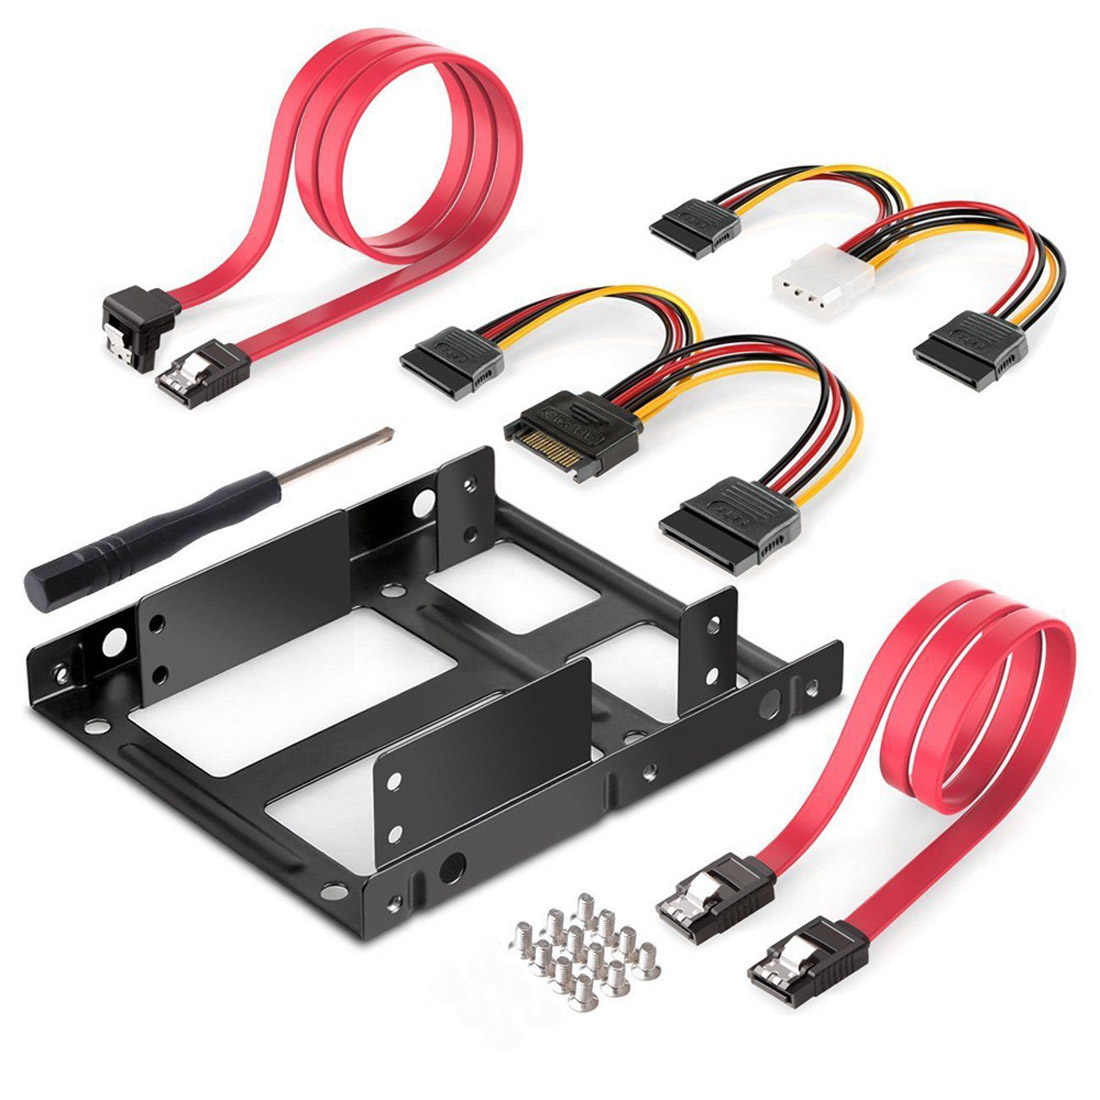 2-Bay 2.5 Inch to 3.5 Inch External HDD SSD Metal Mounting Kit Adapter Bracket With SATA Data Power Cables & Screws